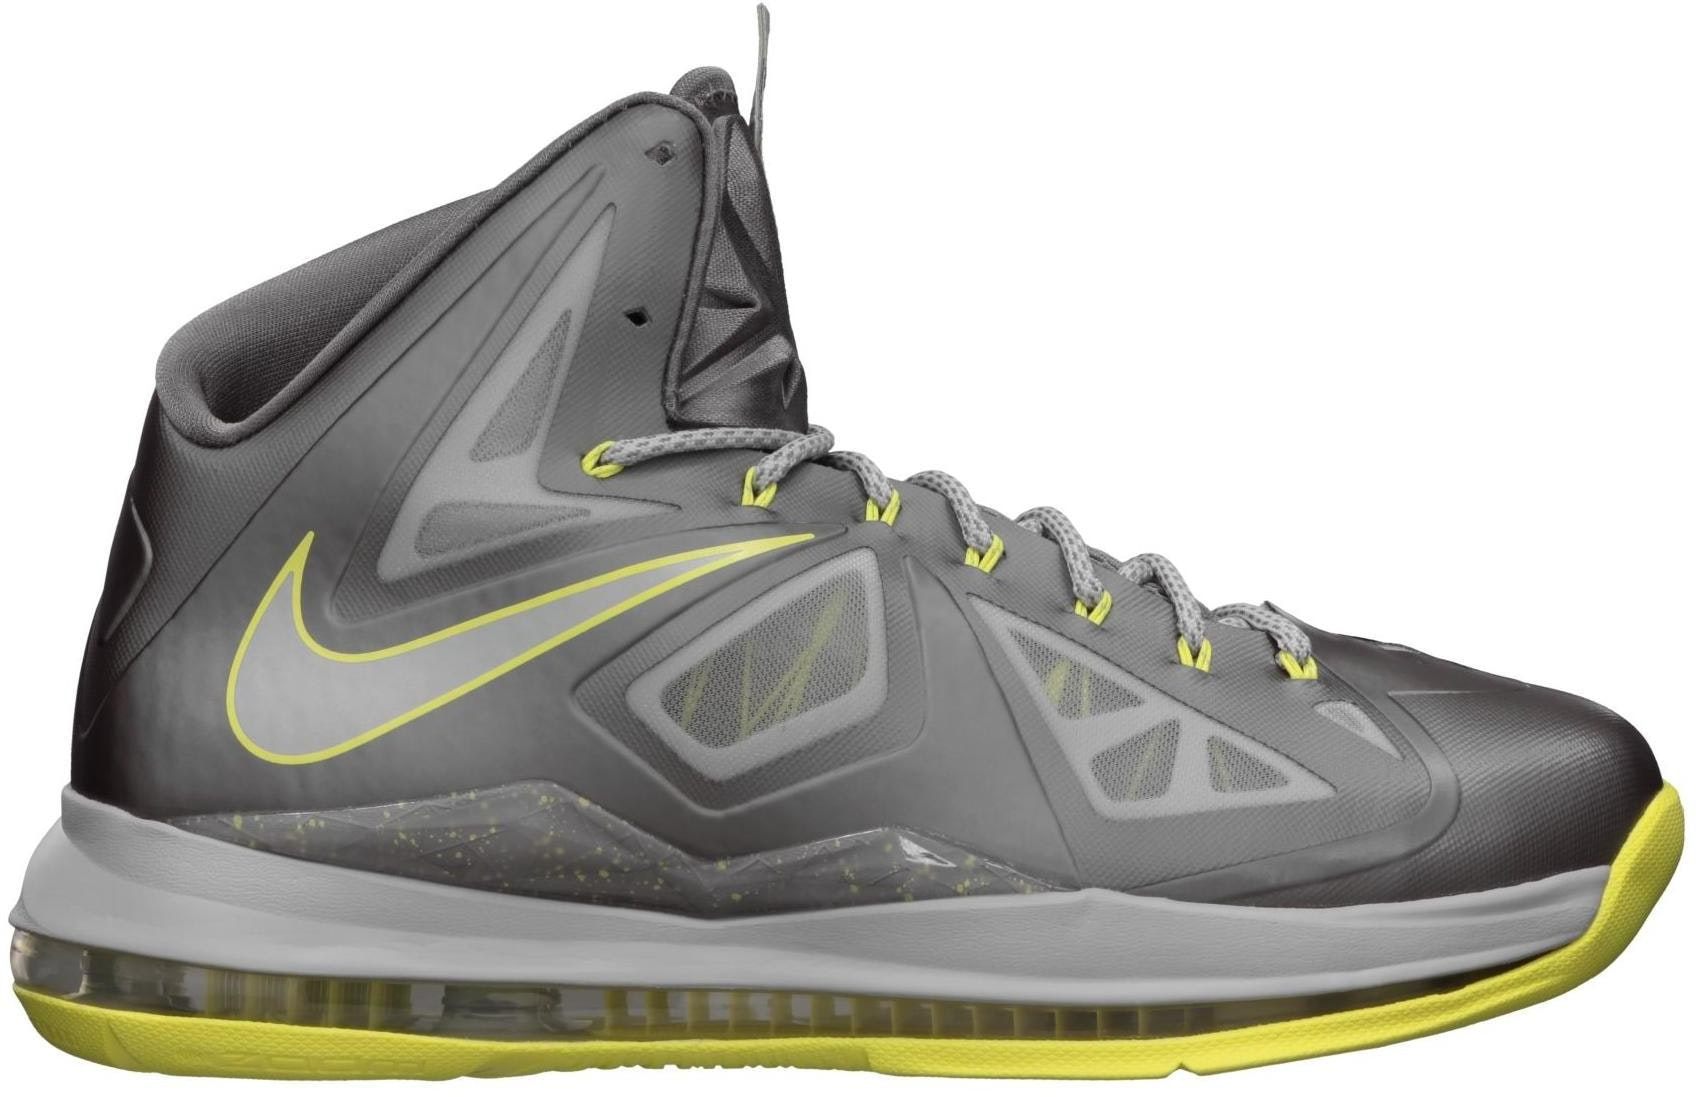 805d5ba835f4 High Quality Nike Lebron 10 Yellow Diamond